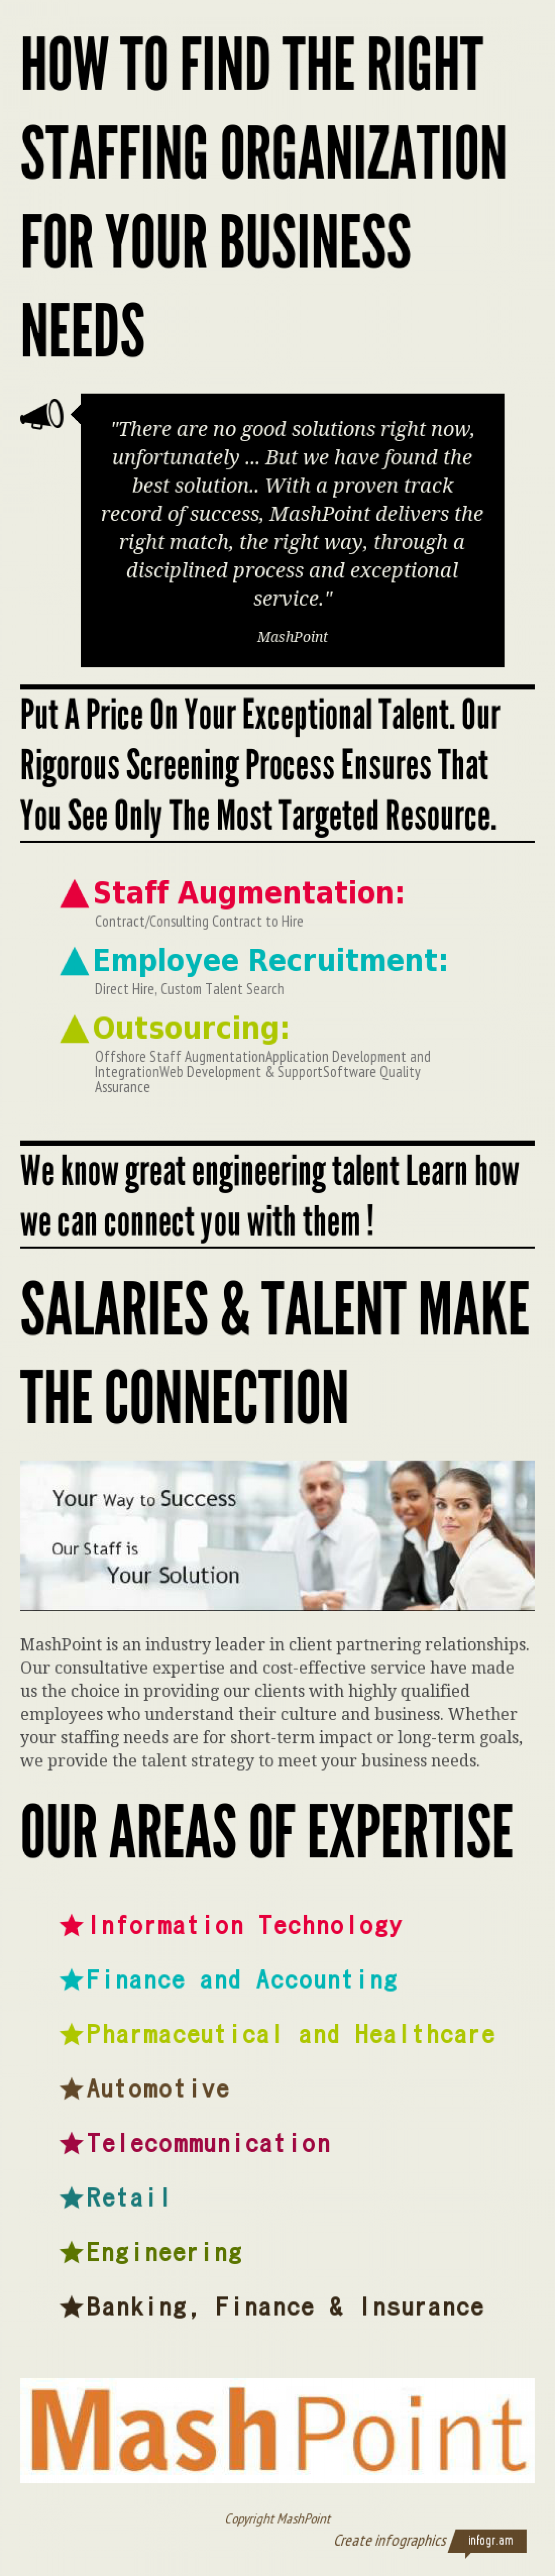 How to find the right staffing organization for your business needs Infographic